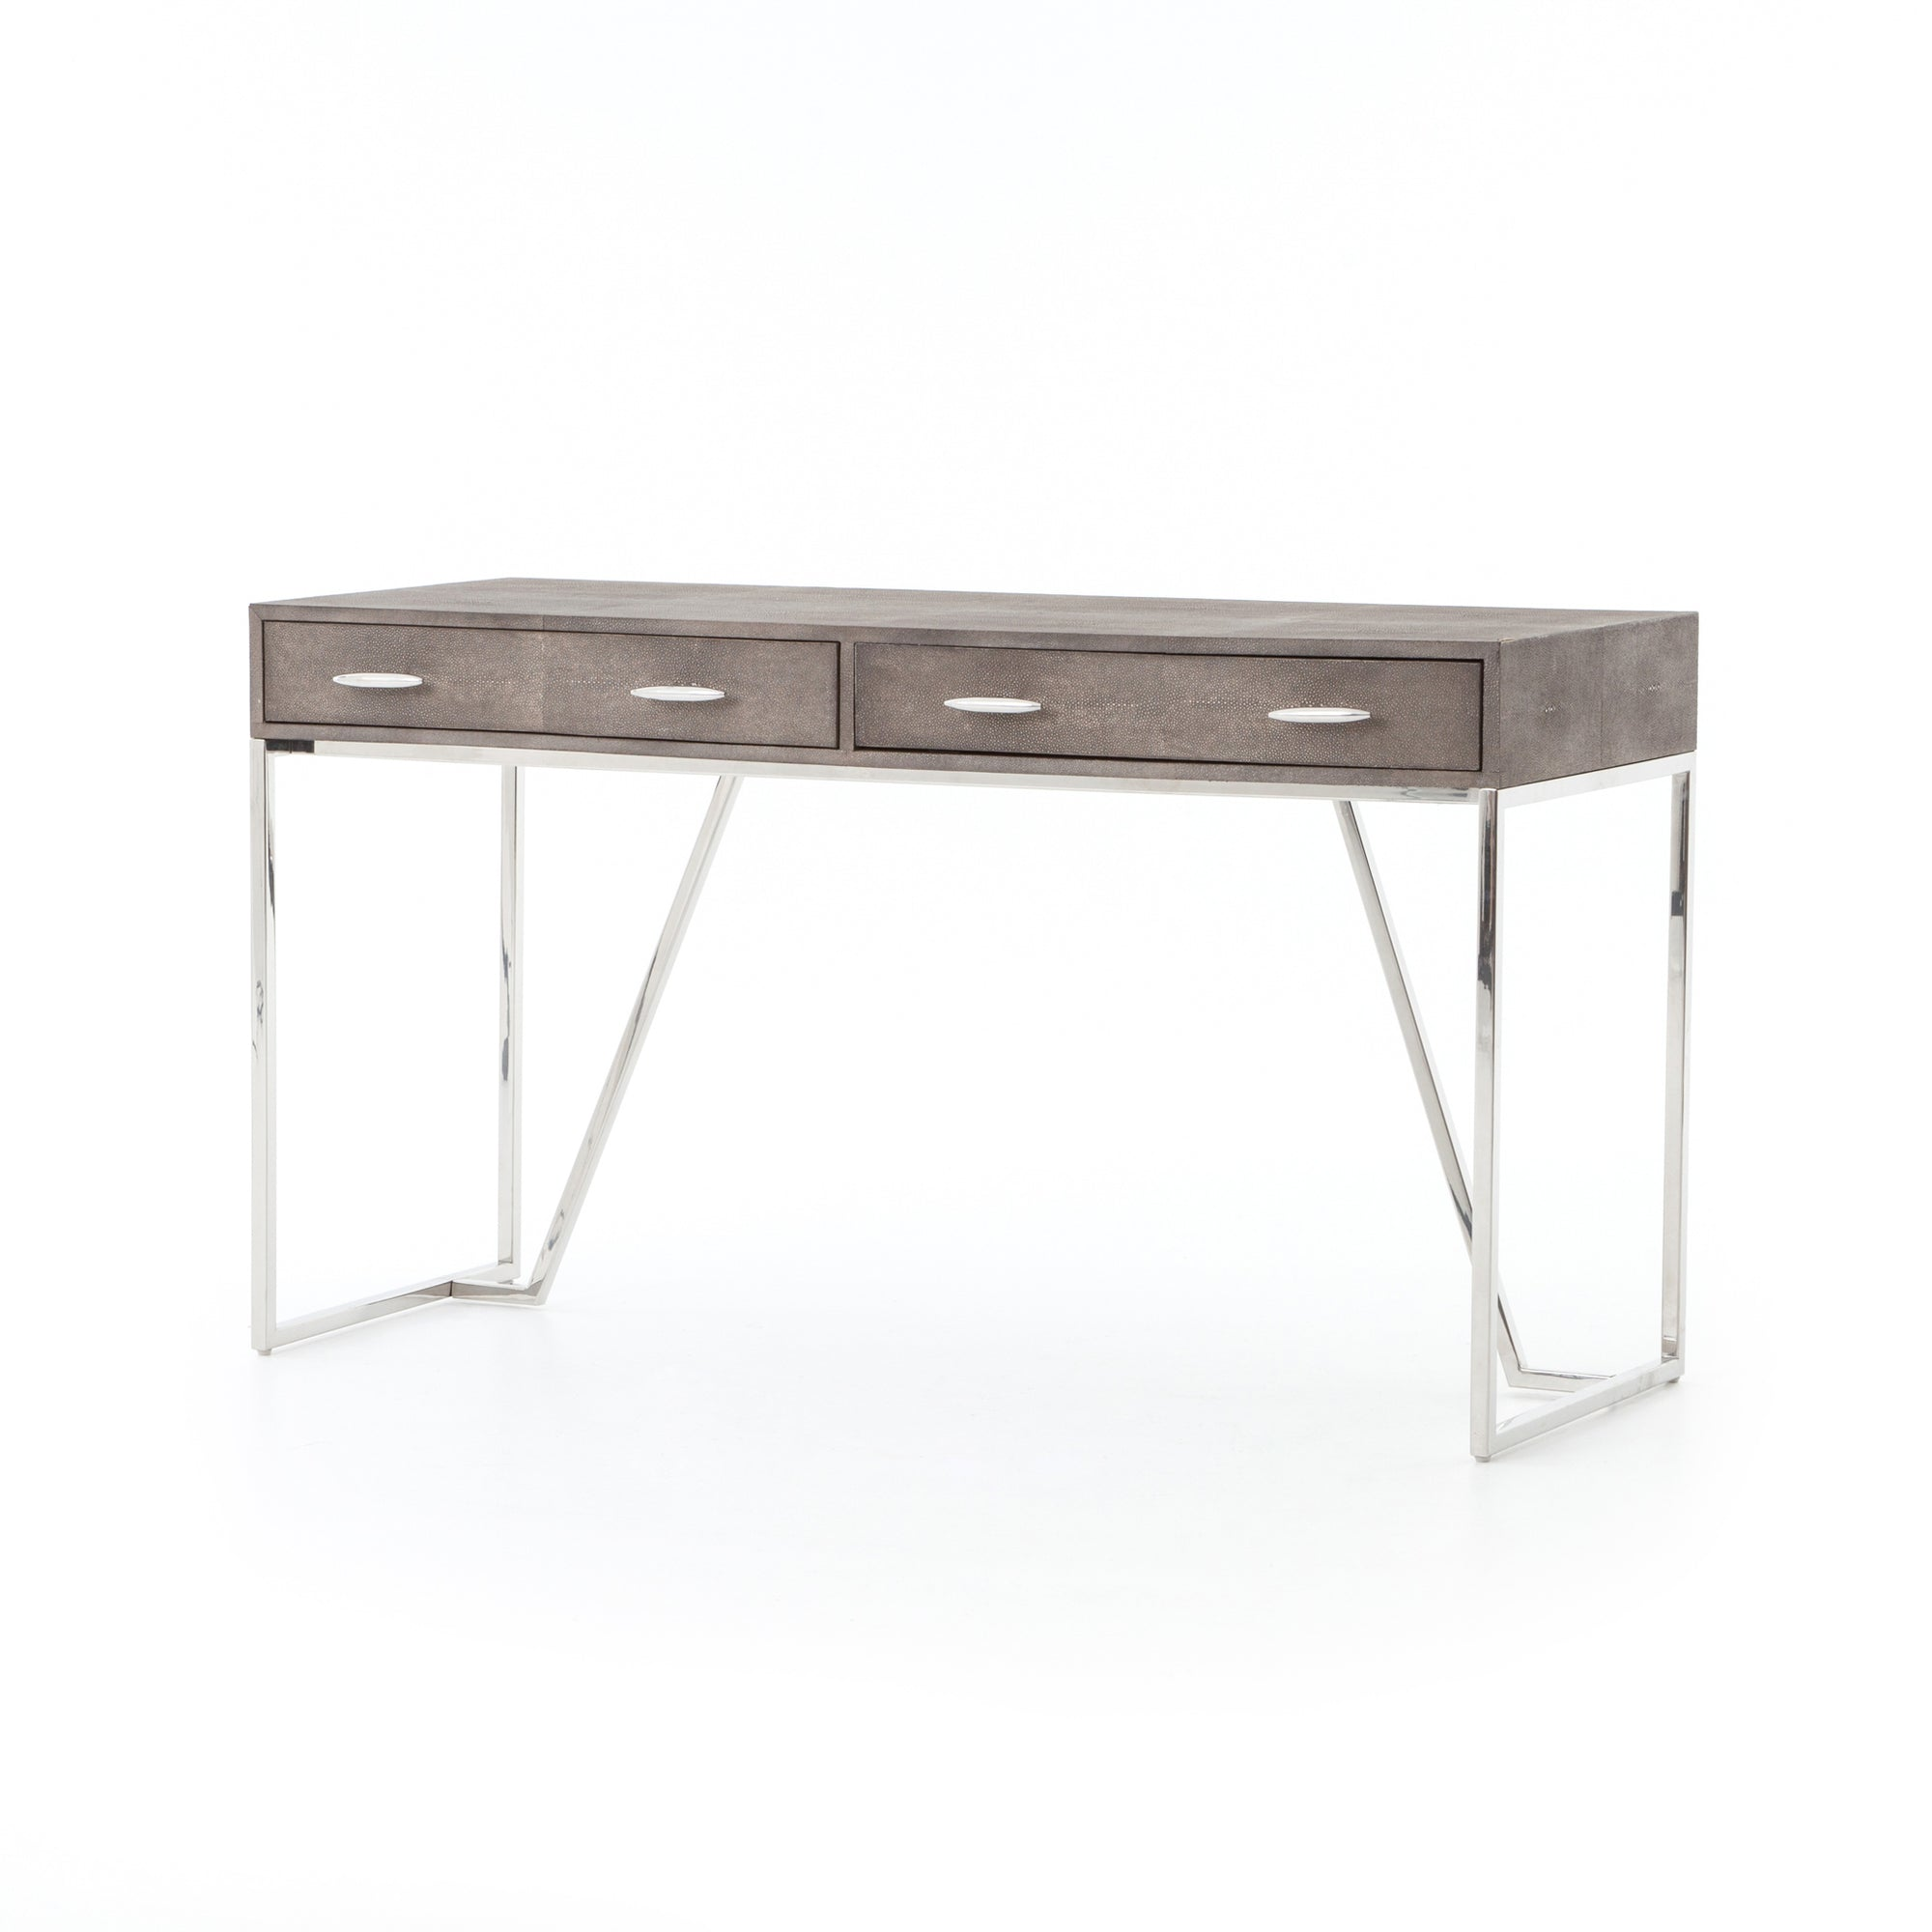 Shagreen Desk - Stainless